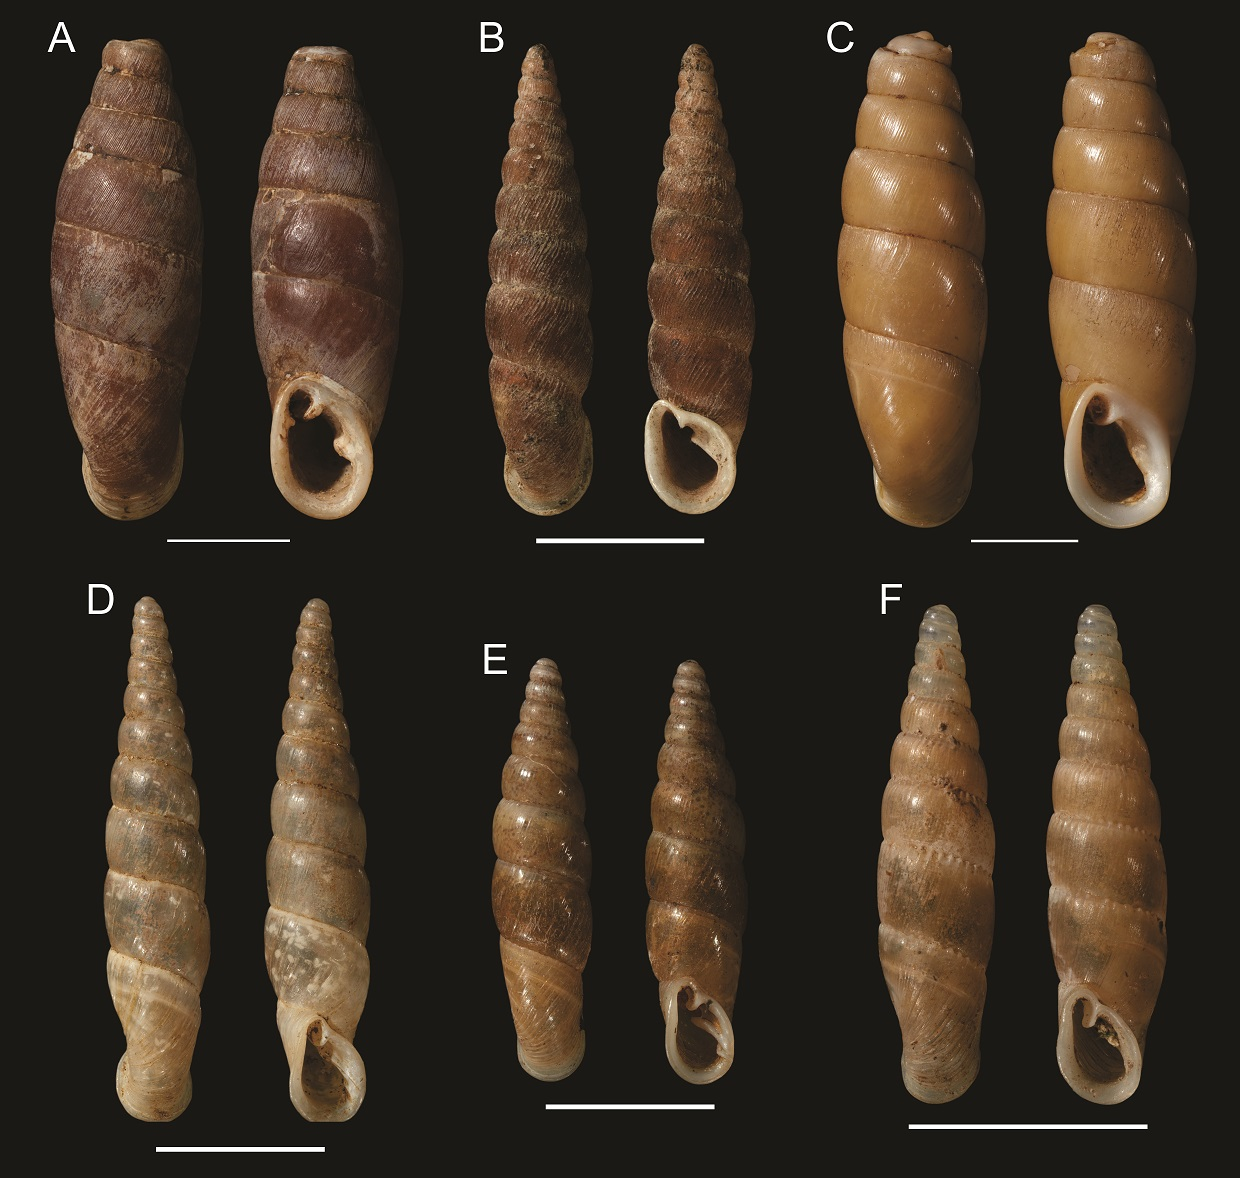 six shells lined up in rows of three with two views of each shell